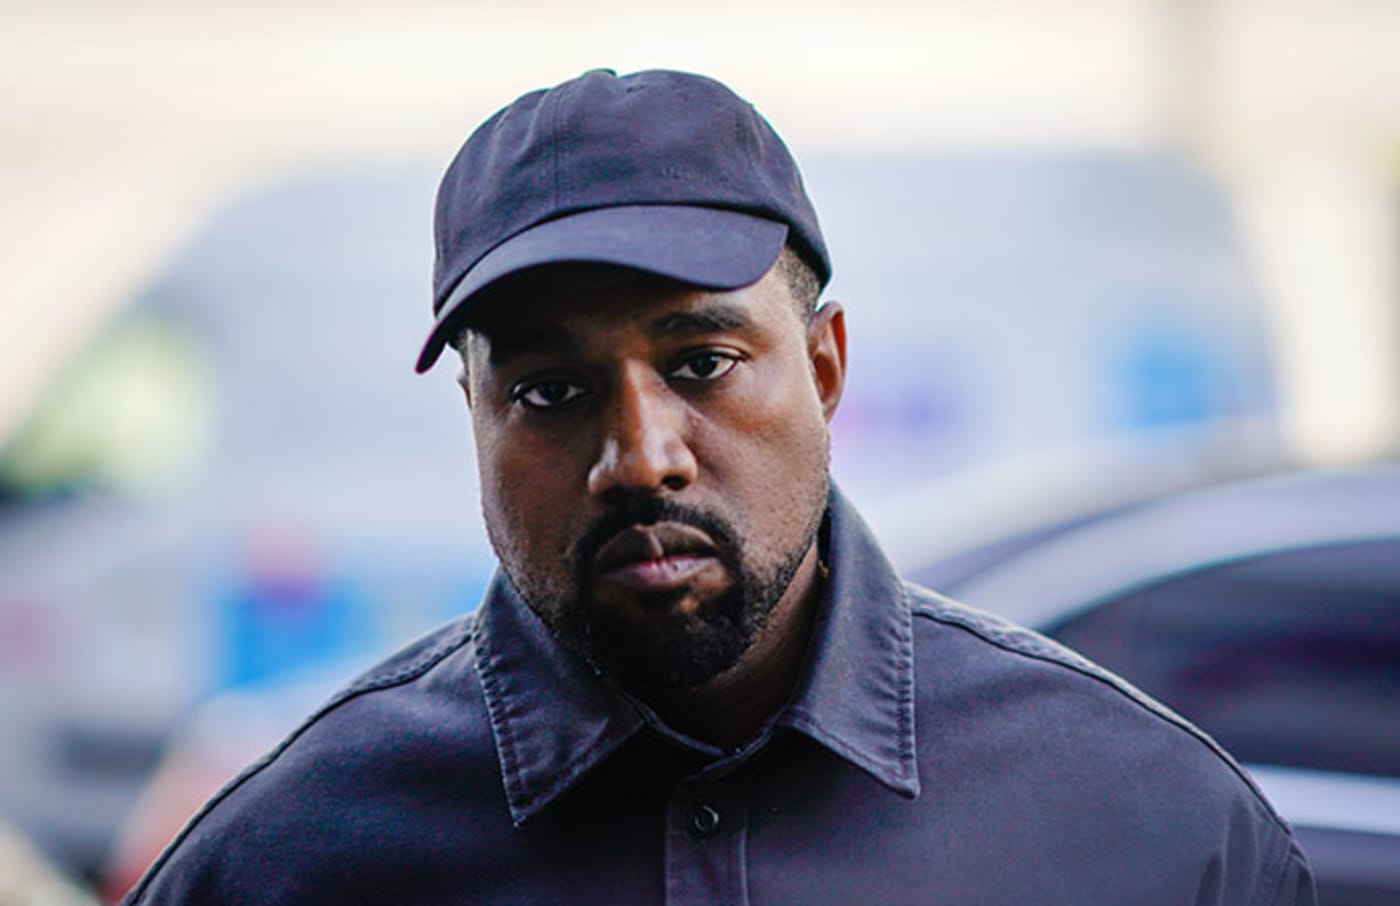 This is a photo of Kanye West.